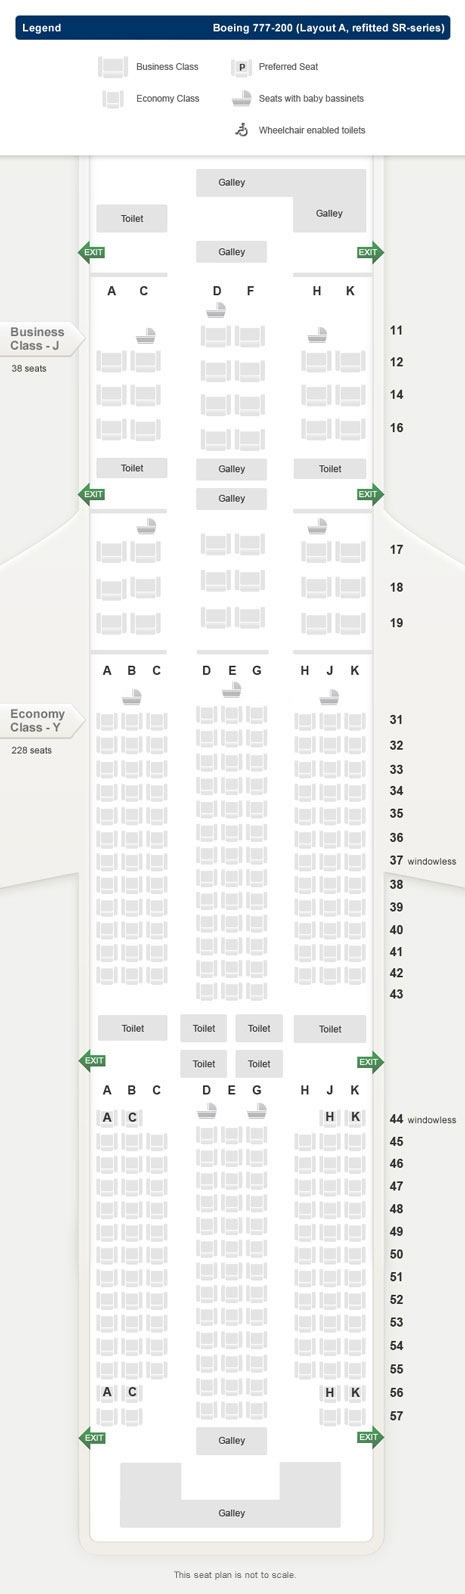 SINGAPORE AIR AIRLINES BOEING 777-200 LAYOUT A REFITTED SR SERIES AIRCRAFT SEATING CHART